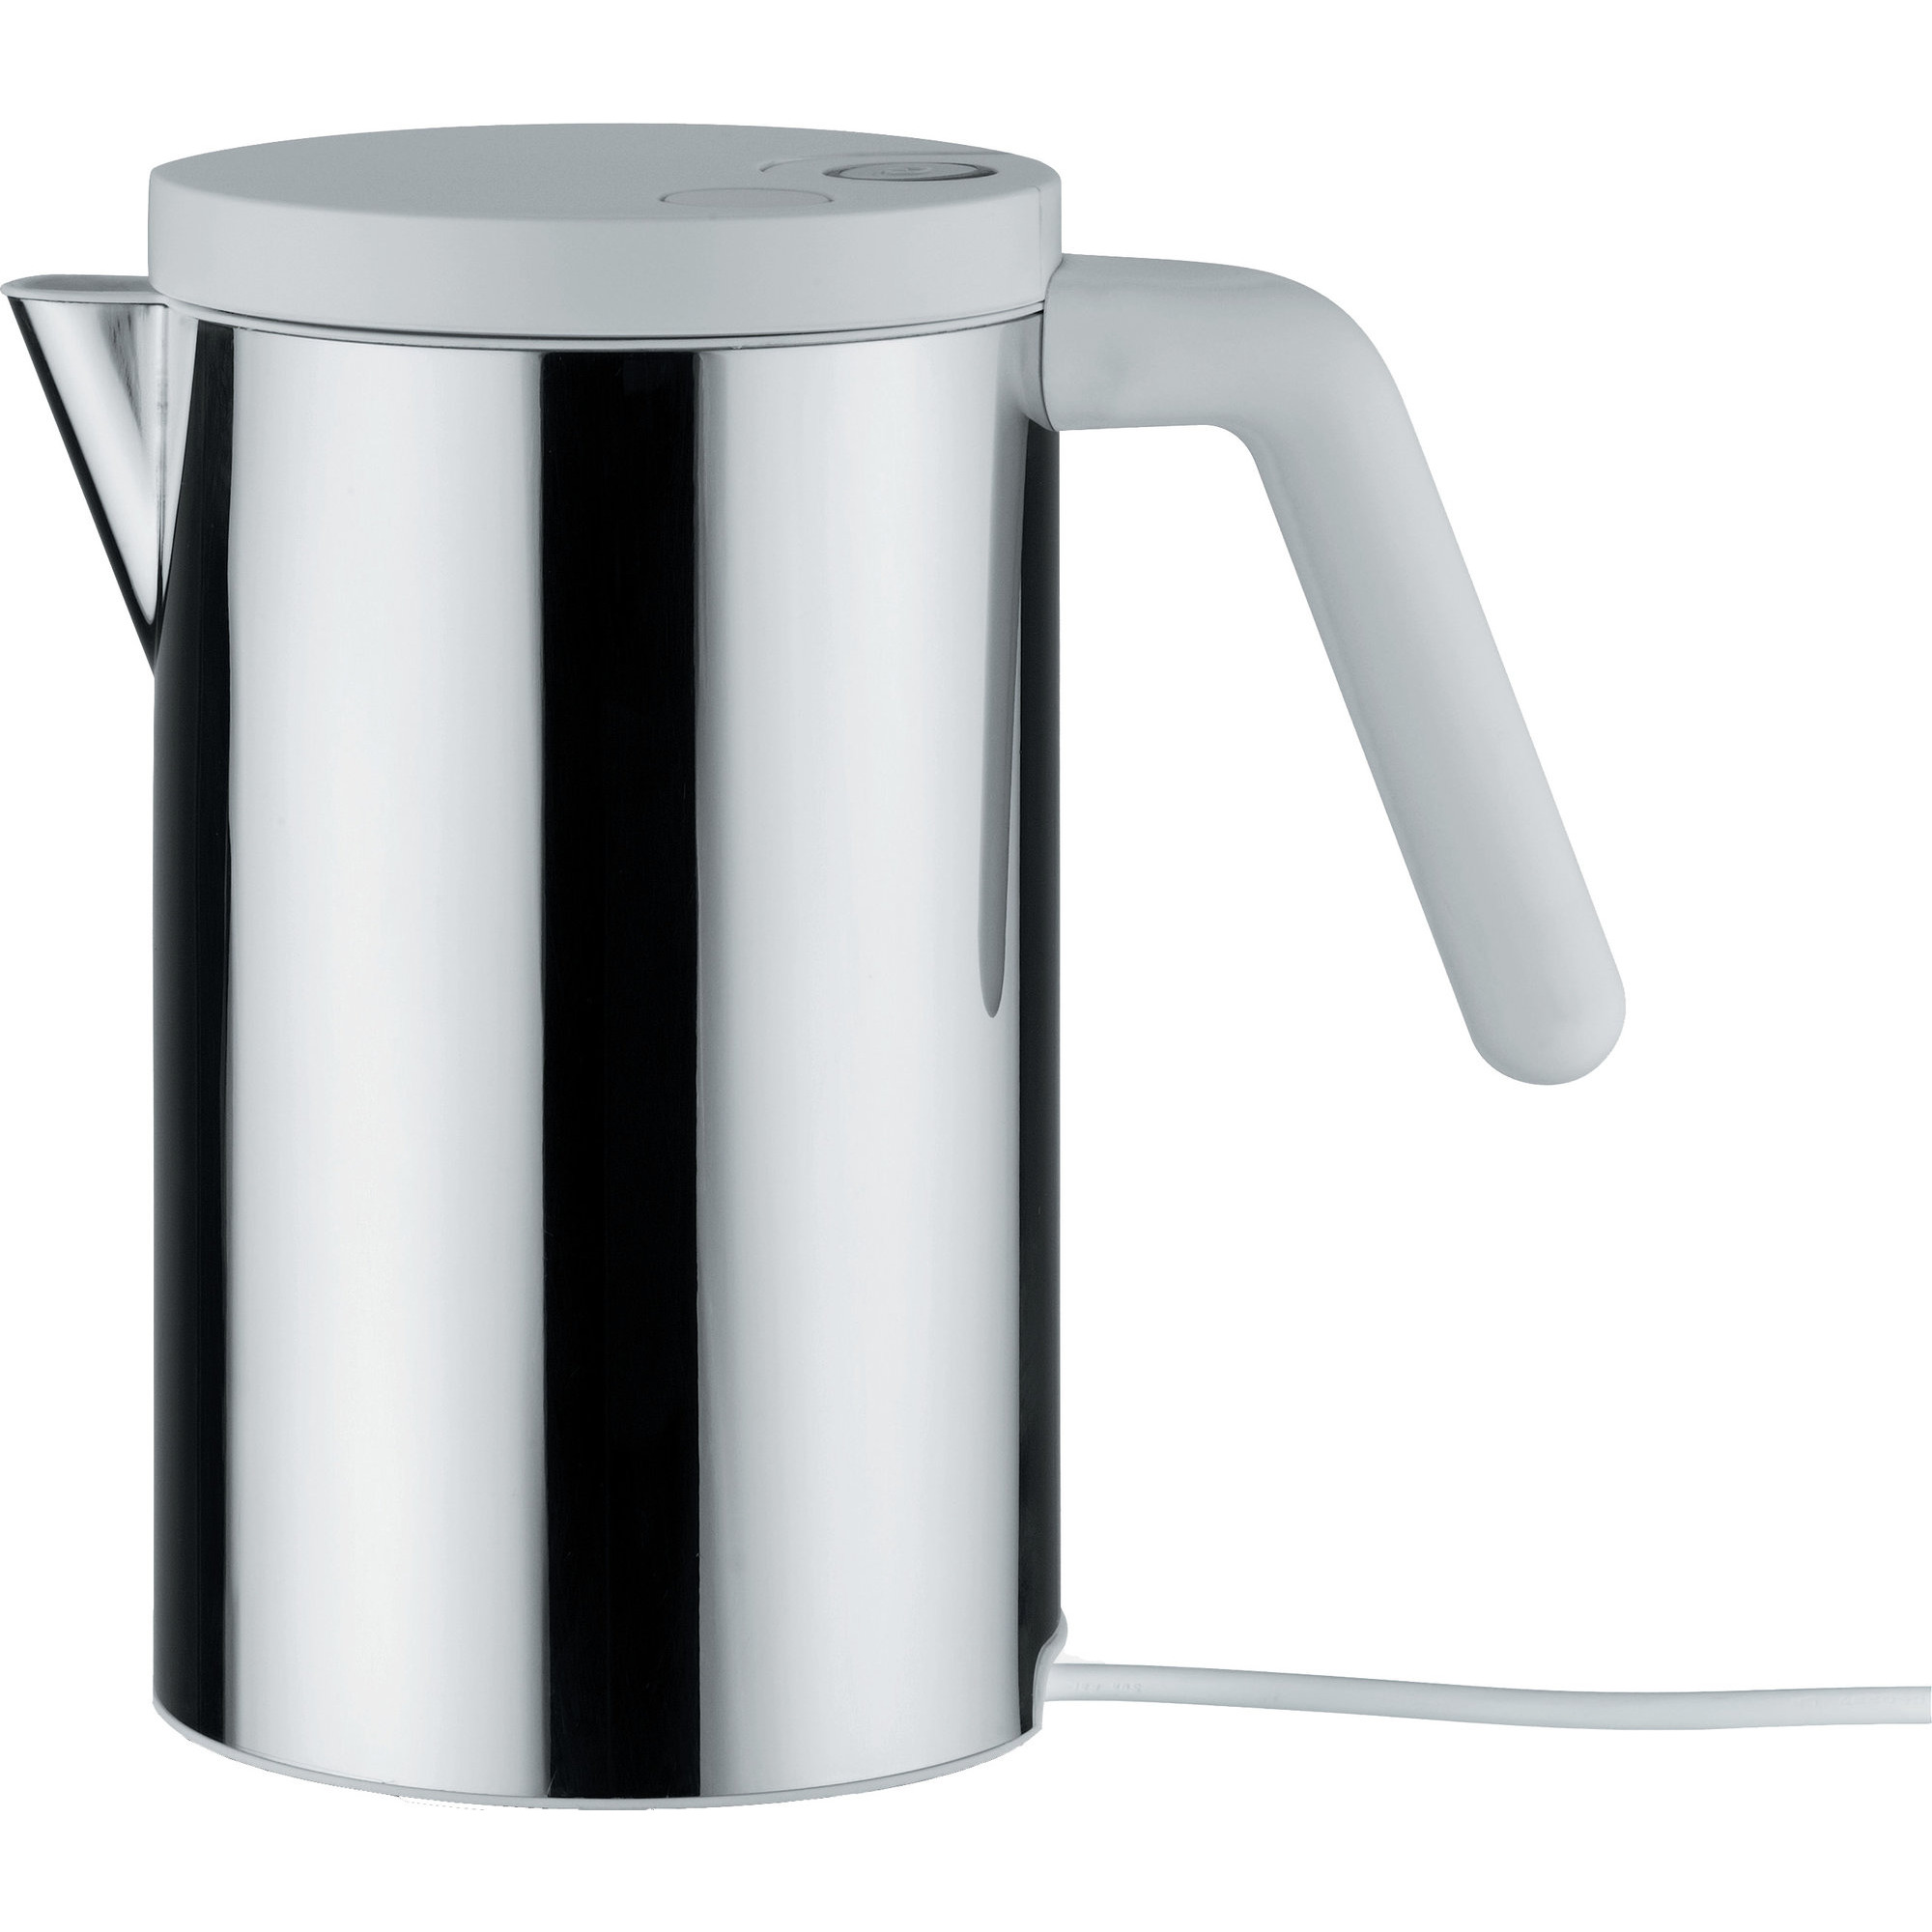 Alessi Hot-it Vattenkokare 08 liter Vit